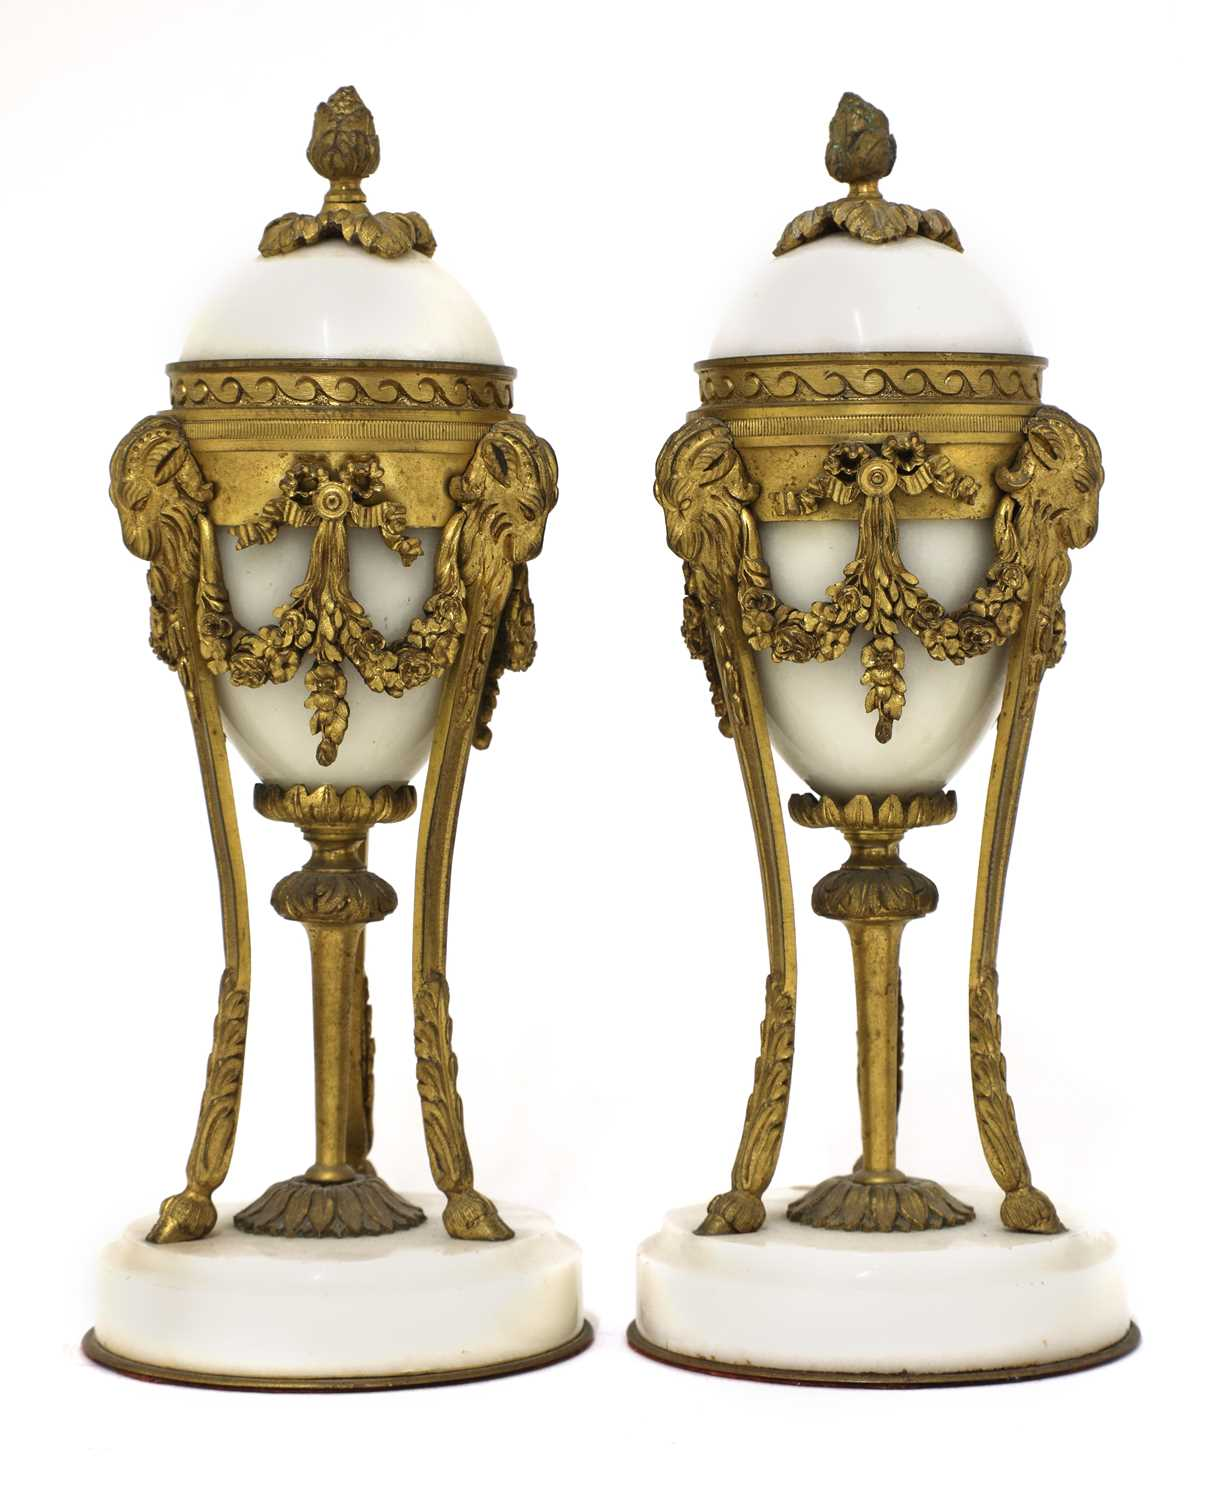 Lot 53 - A pair of French Empire-style white marble and ormolu cassolettes